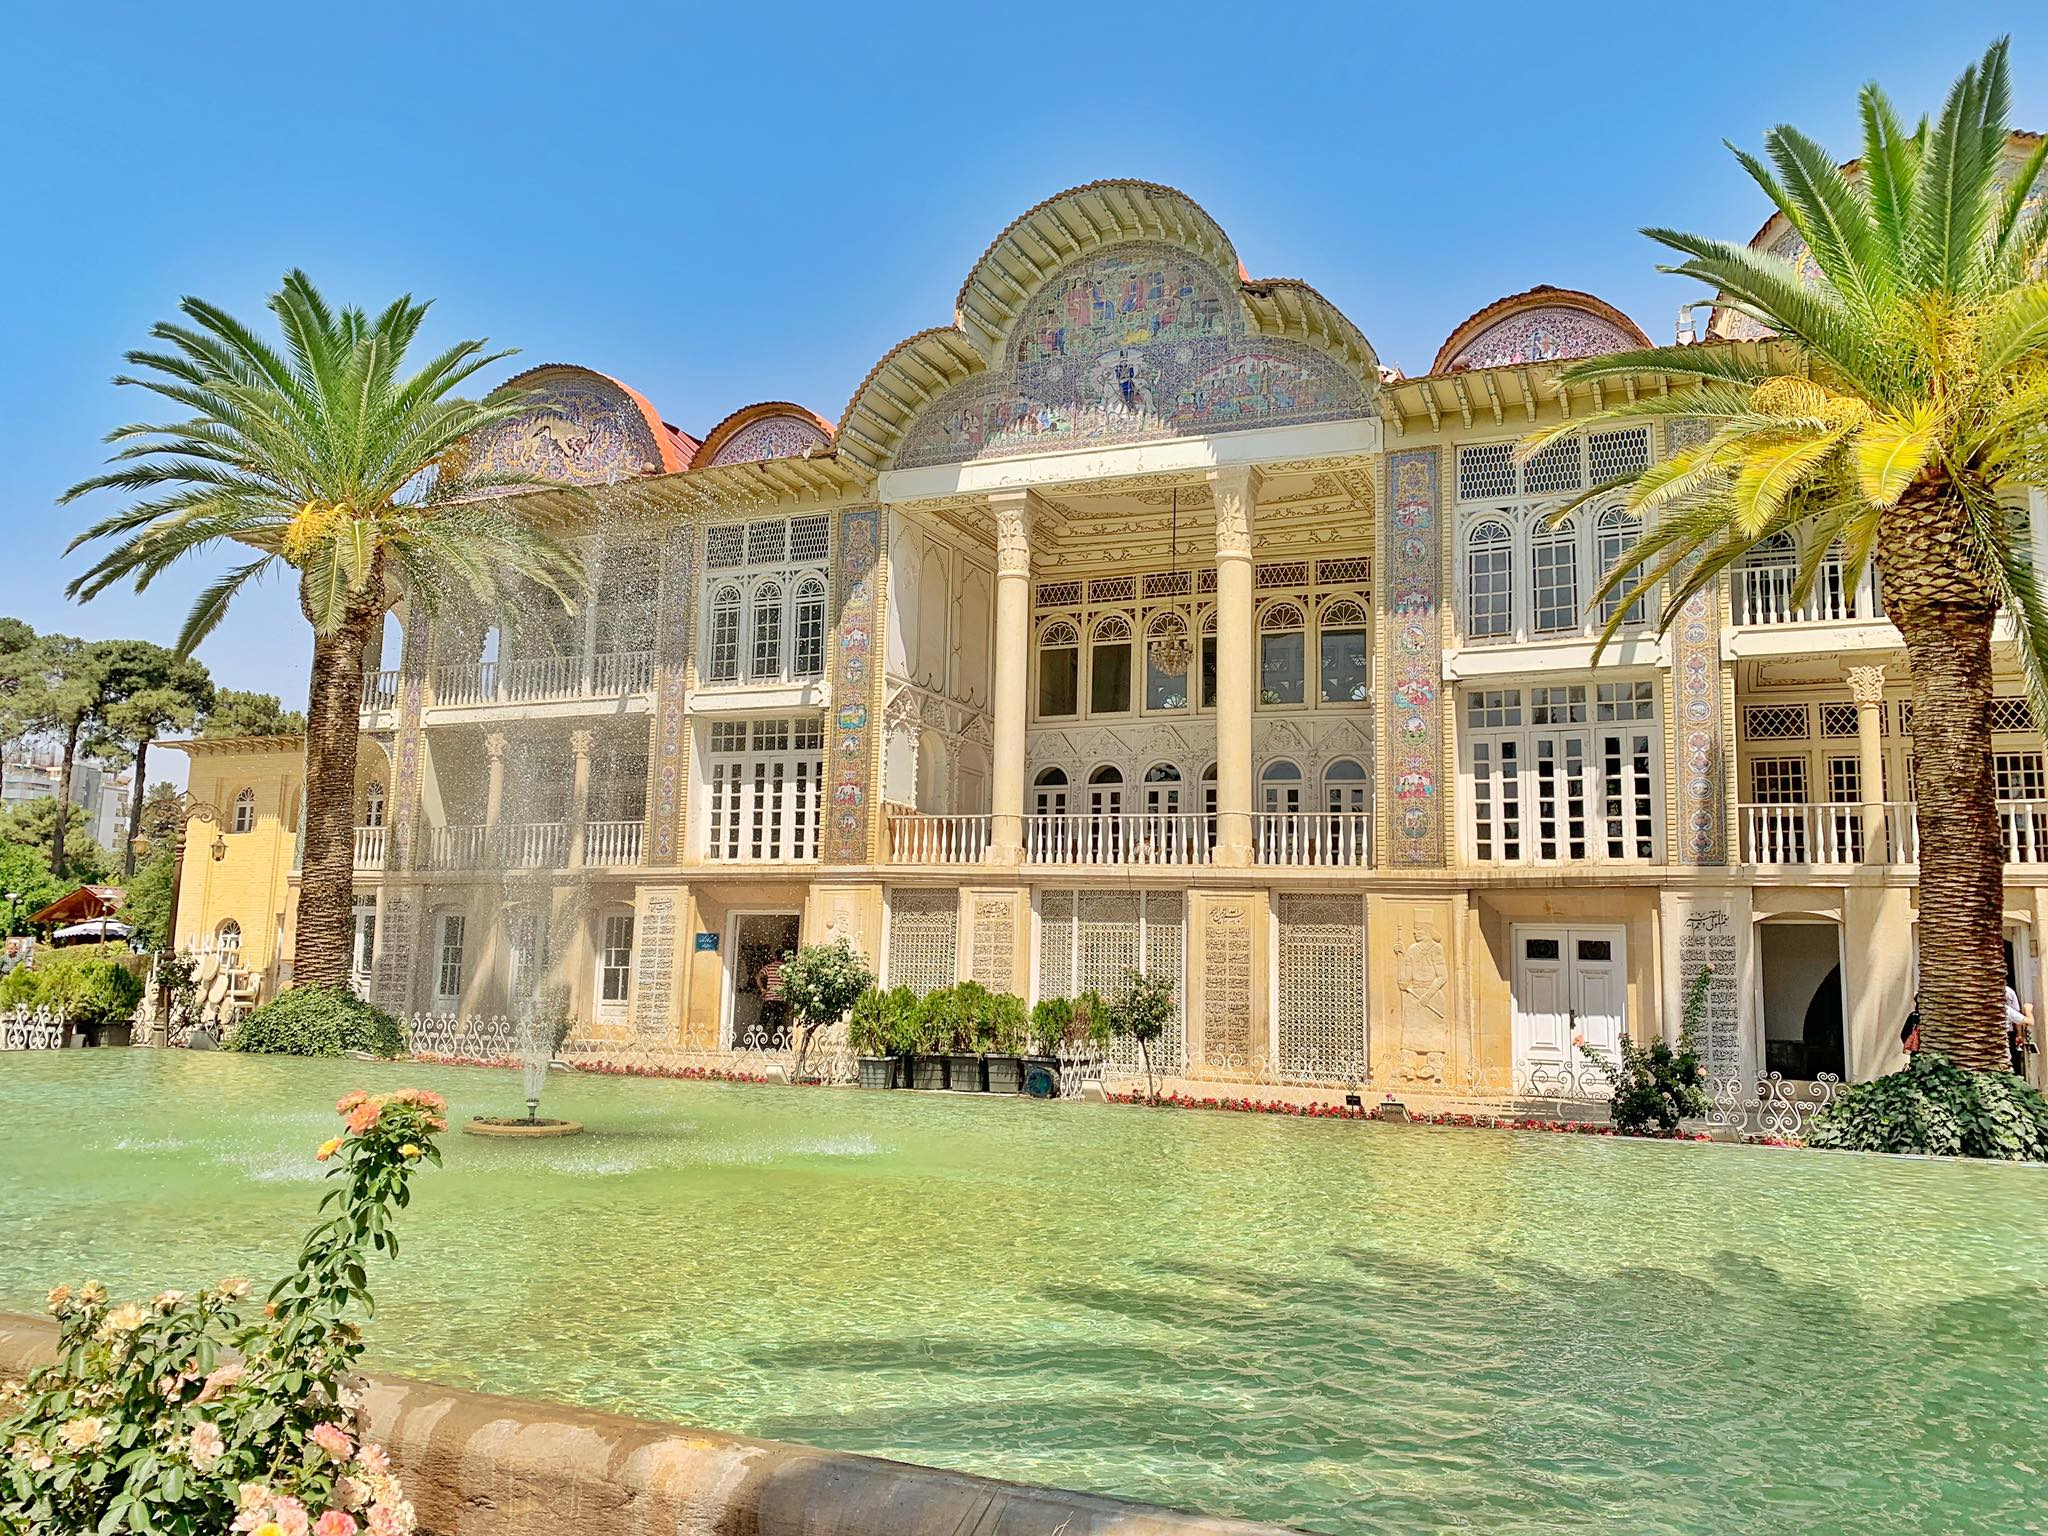 Kach Solo Travels in 2019 Full day tour of Shiraz.jpg